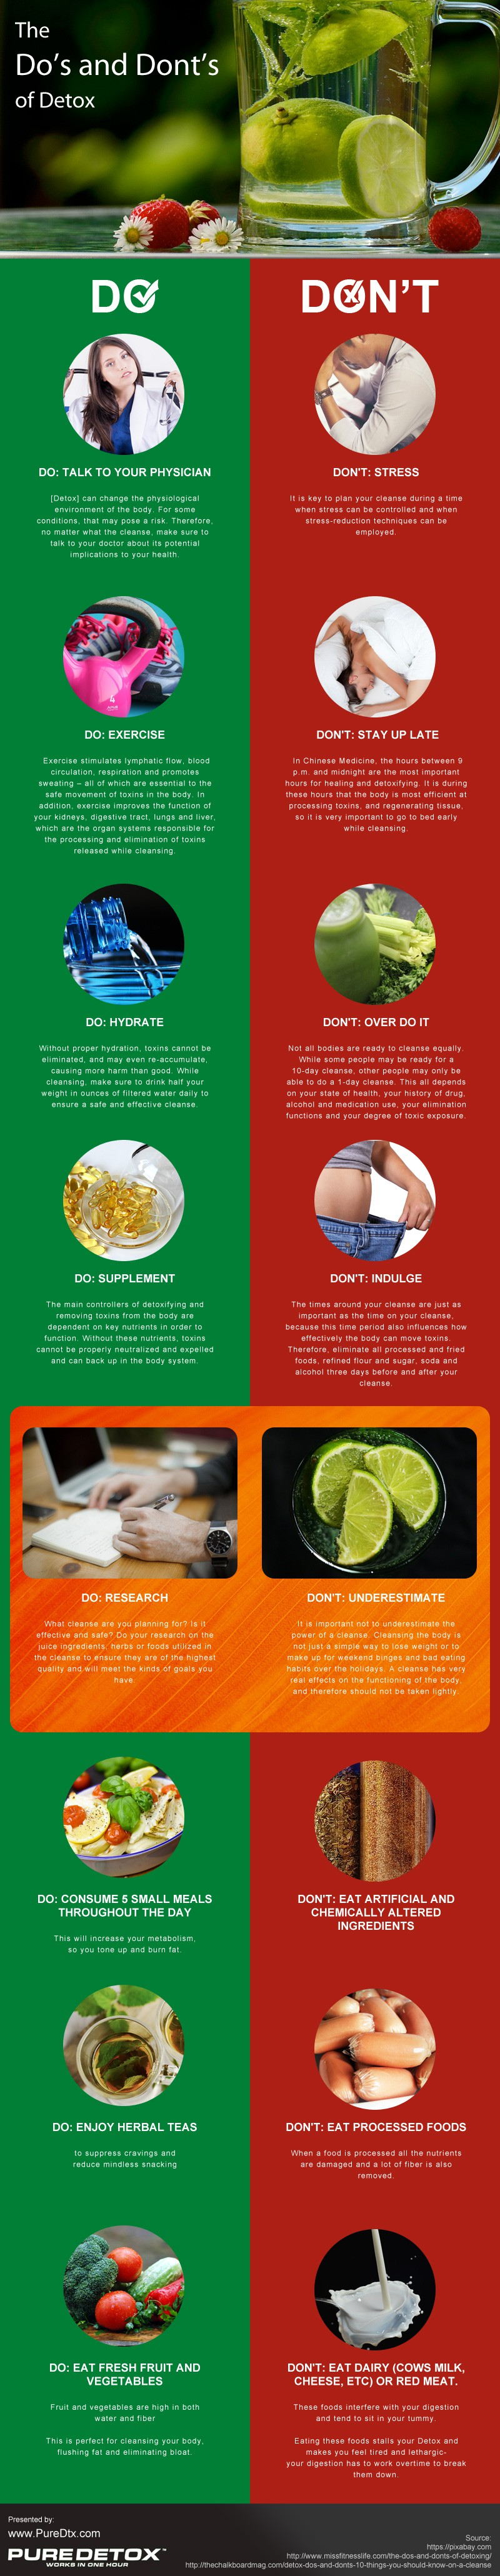 The Do's and Donts of Detox